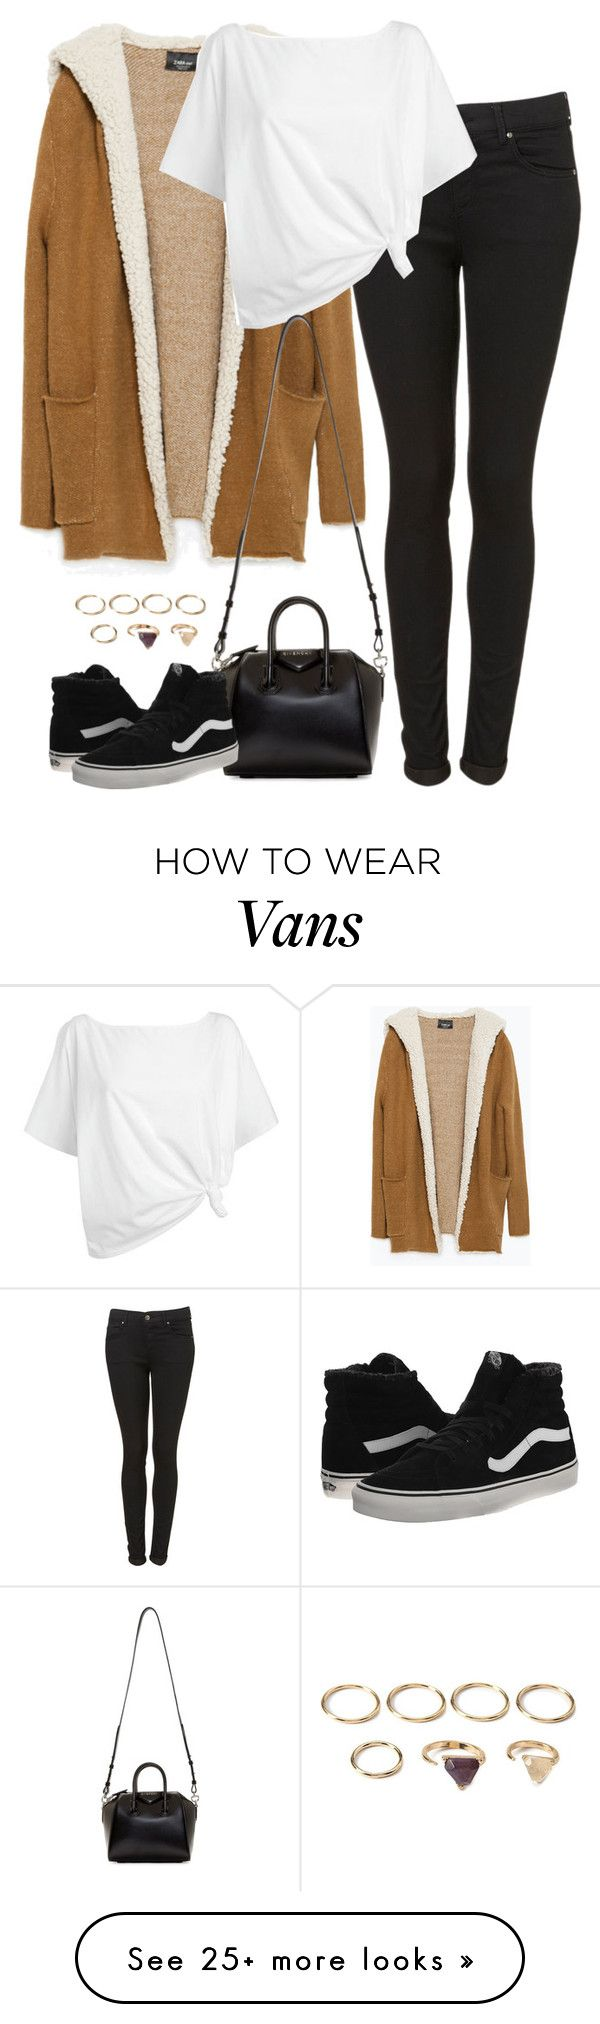 """Untitled #4945"" by eleanorsclosettt on Polyvore featuring Zara, Red Herring, Givenchy, Vans and Forever 21"